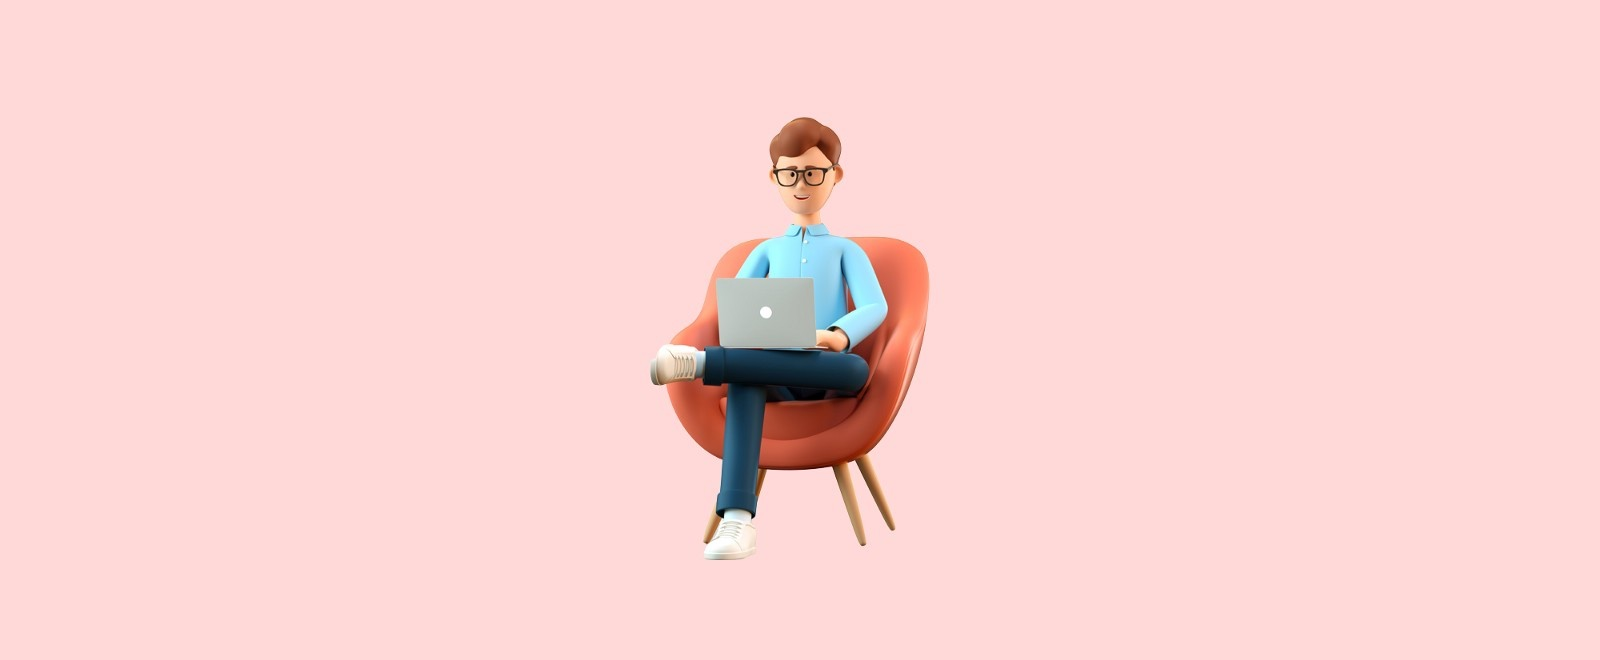 3D model of a man sitting in a chair working on their laptop